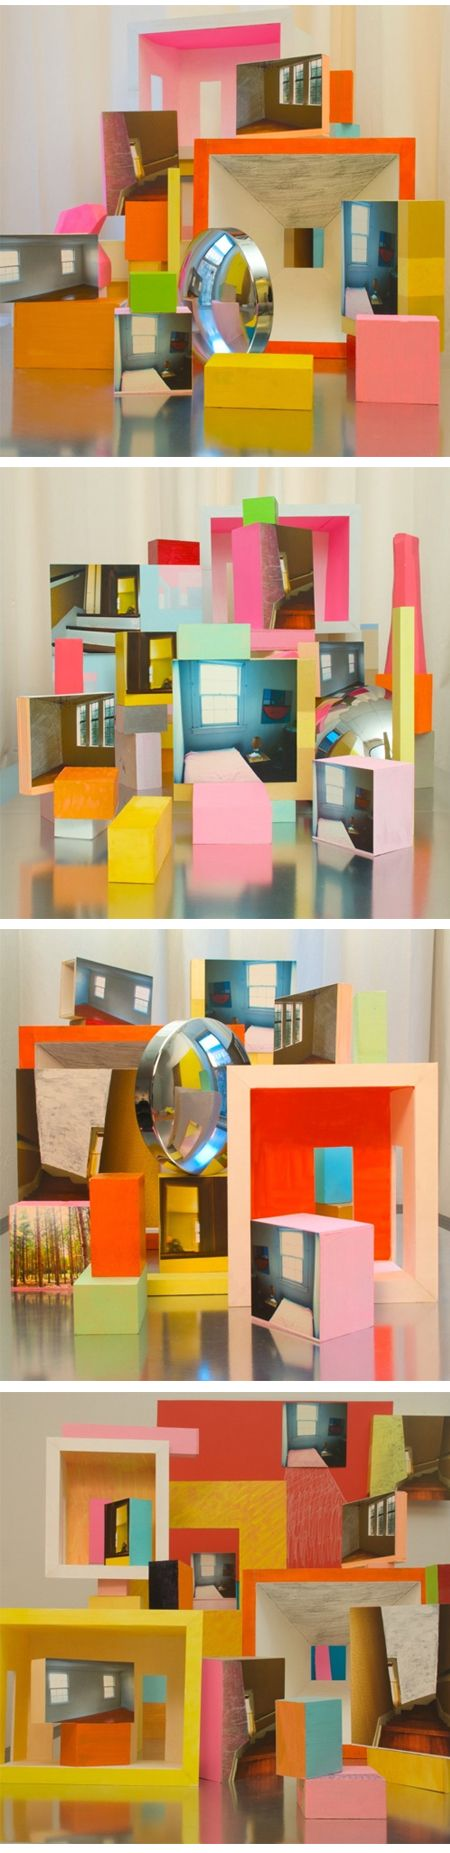 series of still life photographs {titled Our Home My Home} by New York based artist Erin O'Keefe.